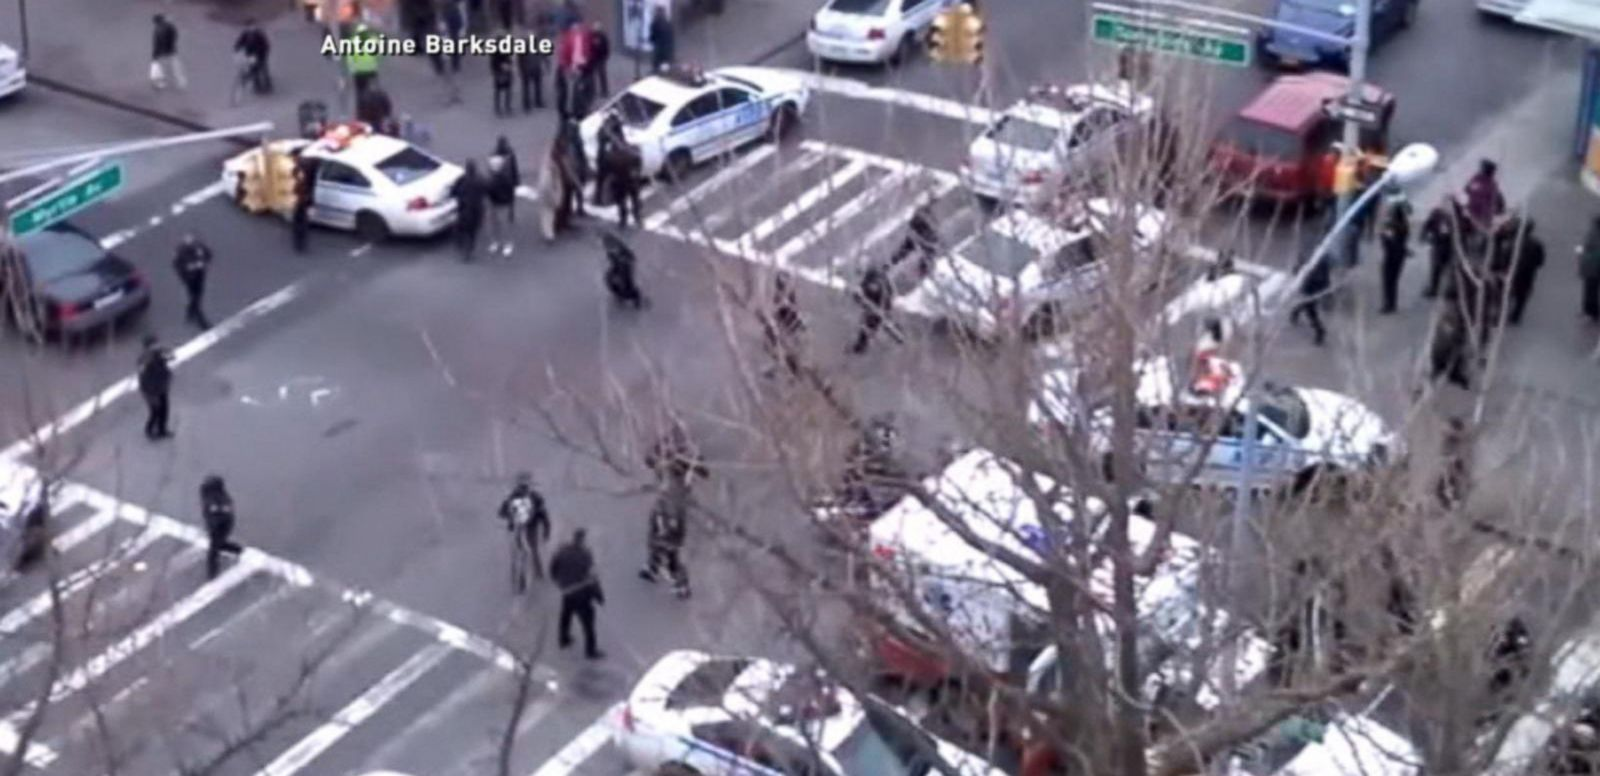 VIDEO: Video Shows Aftermath of Two Police Officers Gunned Down in Cold Blood